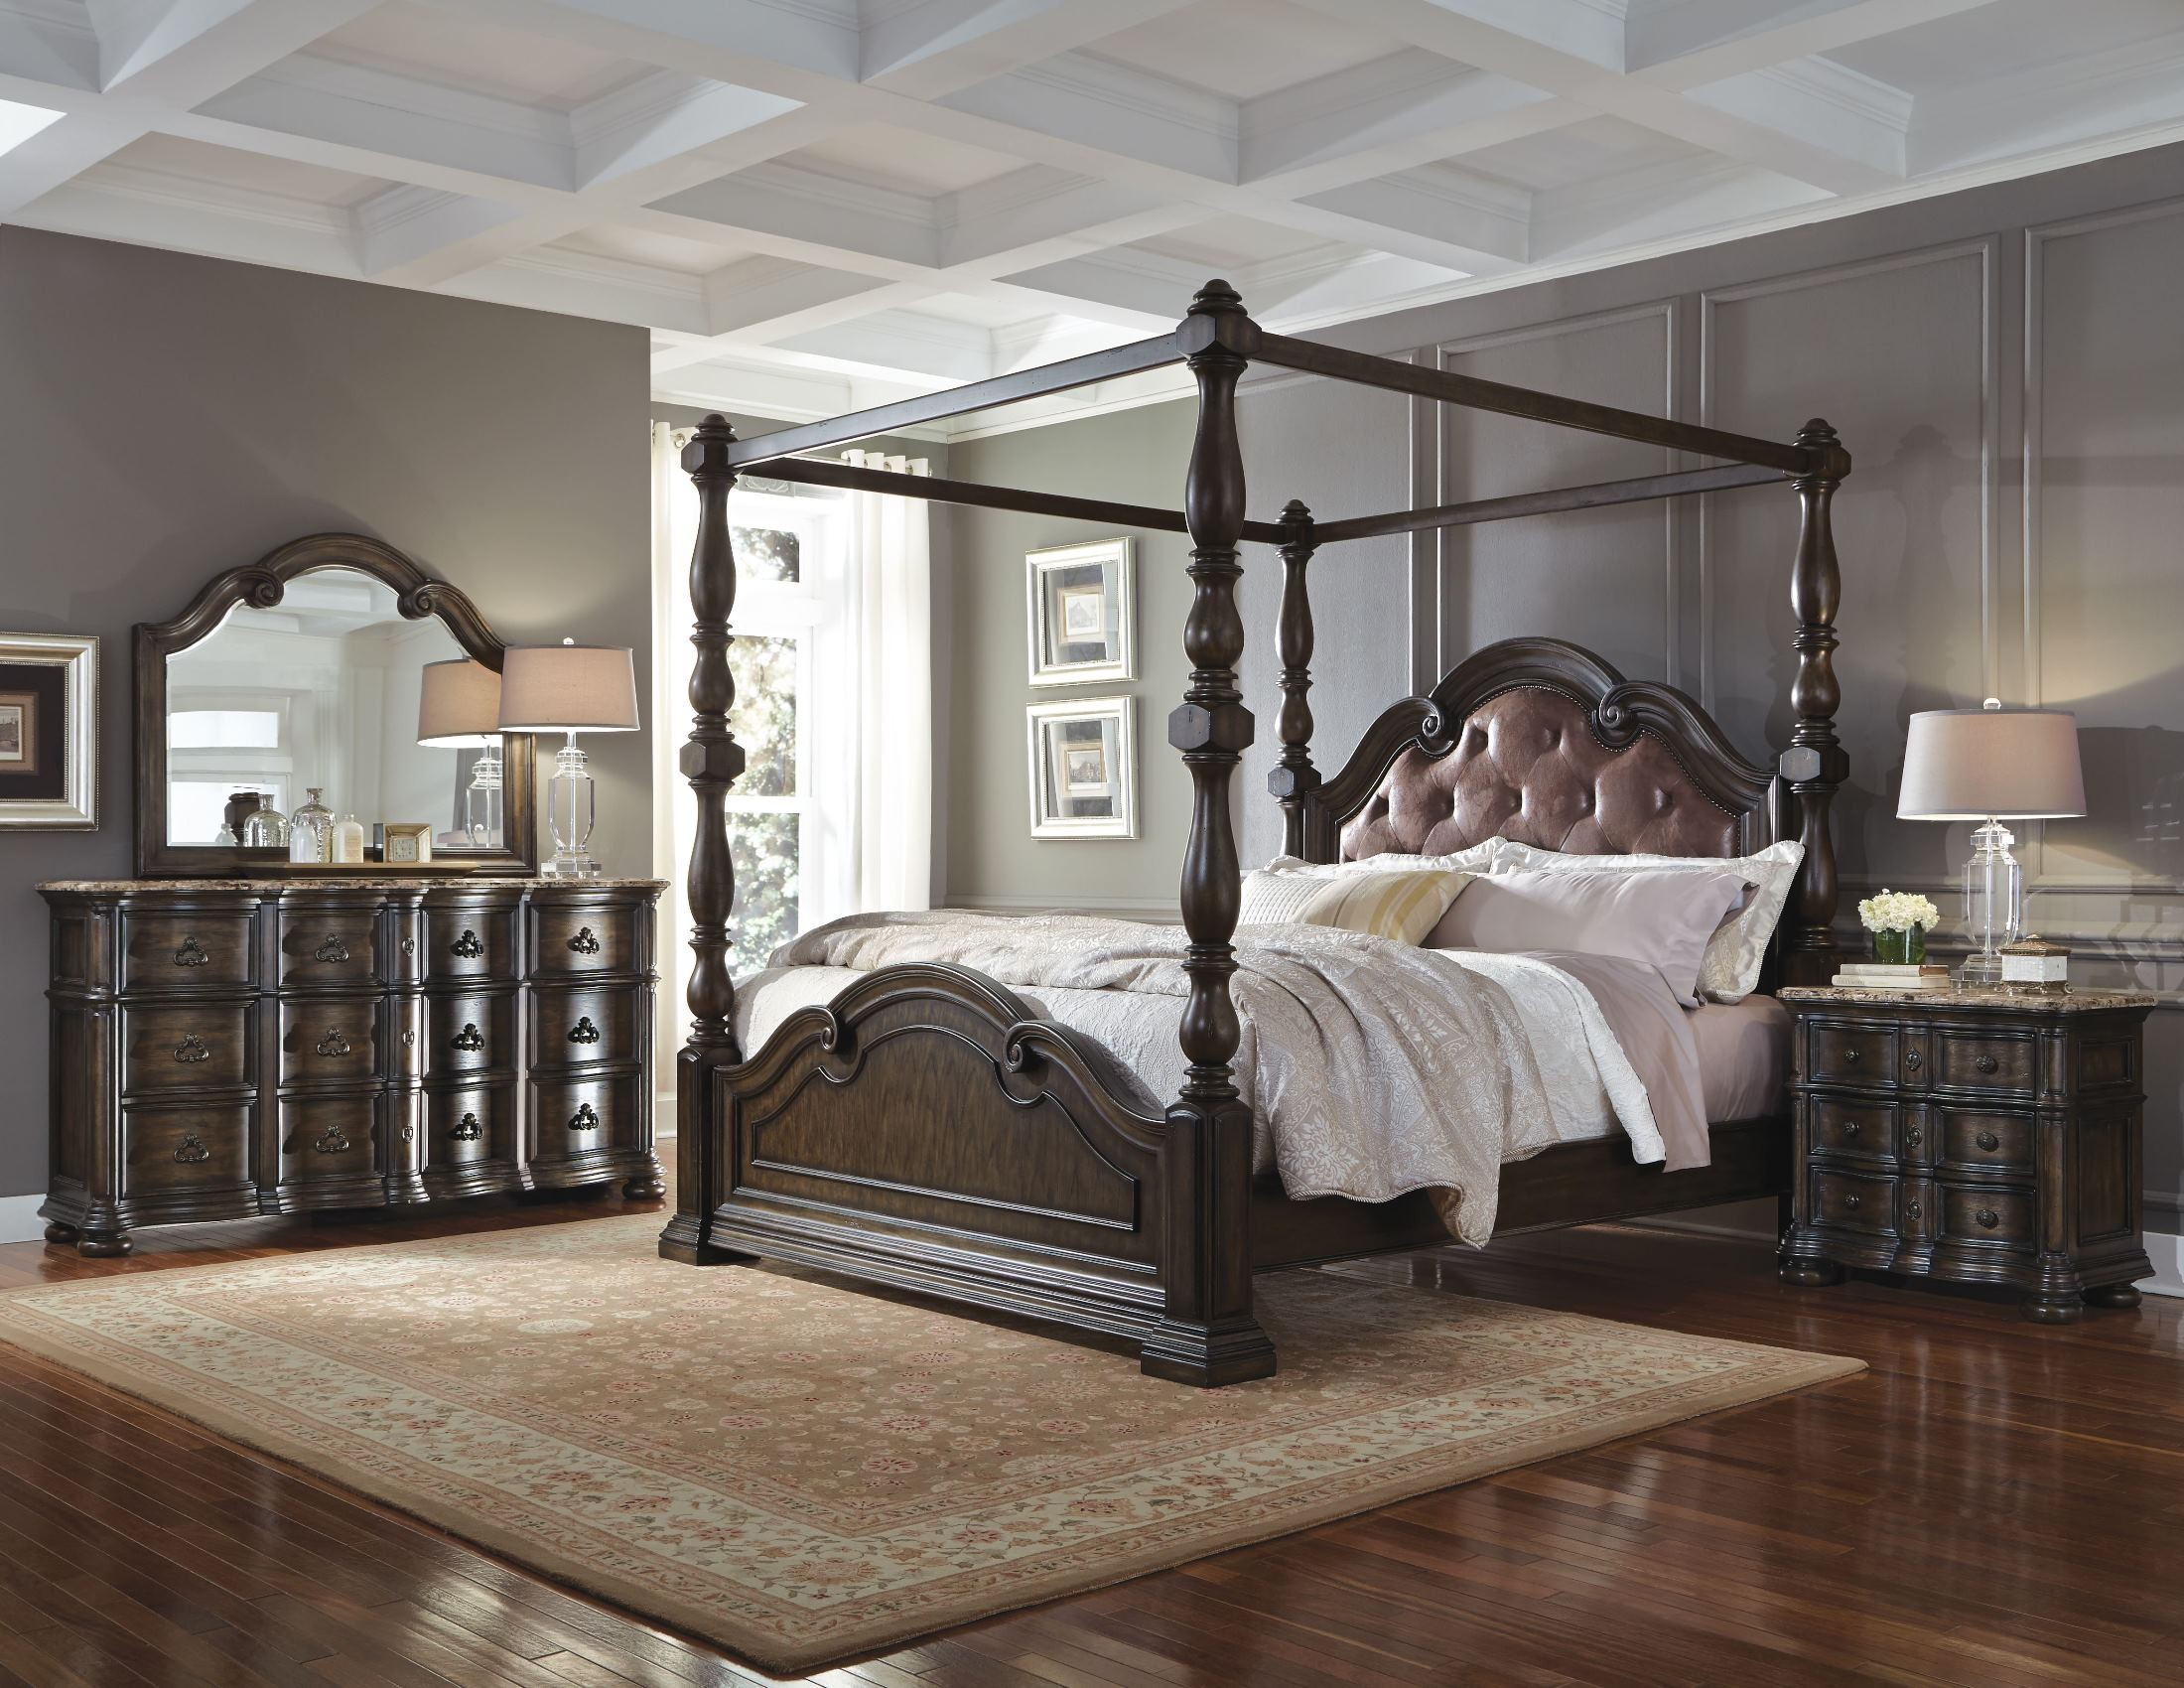 Cortina Canopy Bedroom Set, 694150-694151-694152-694152